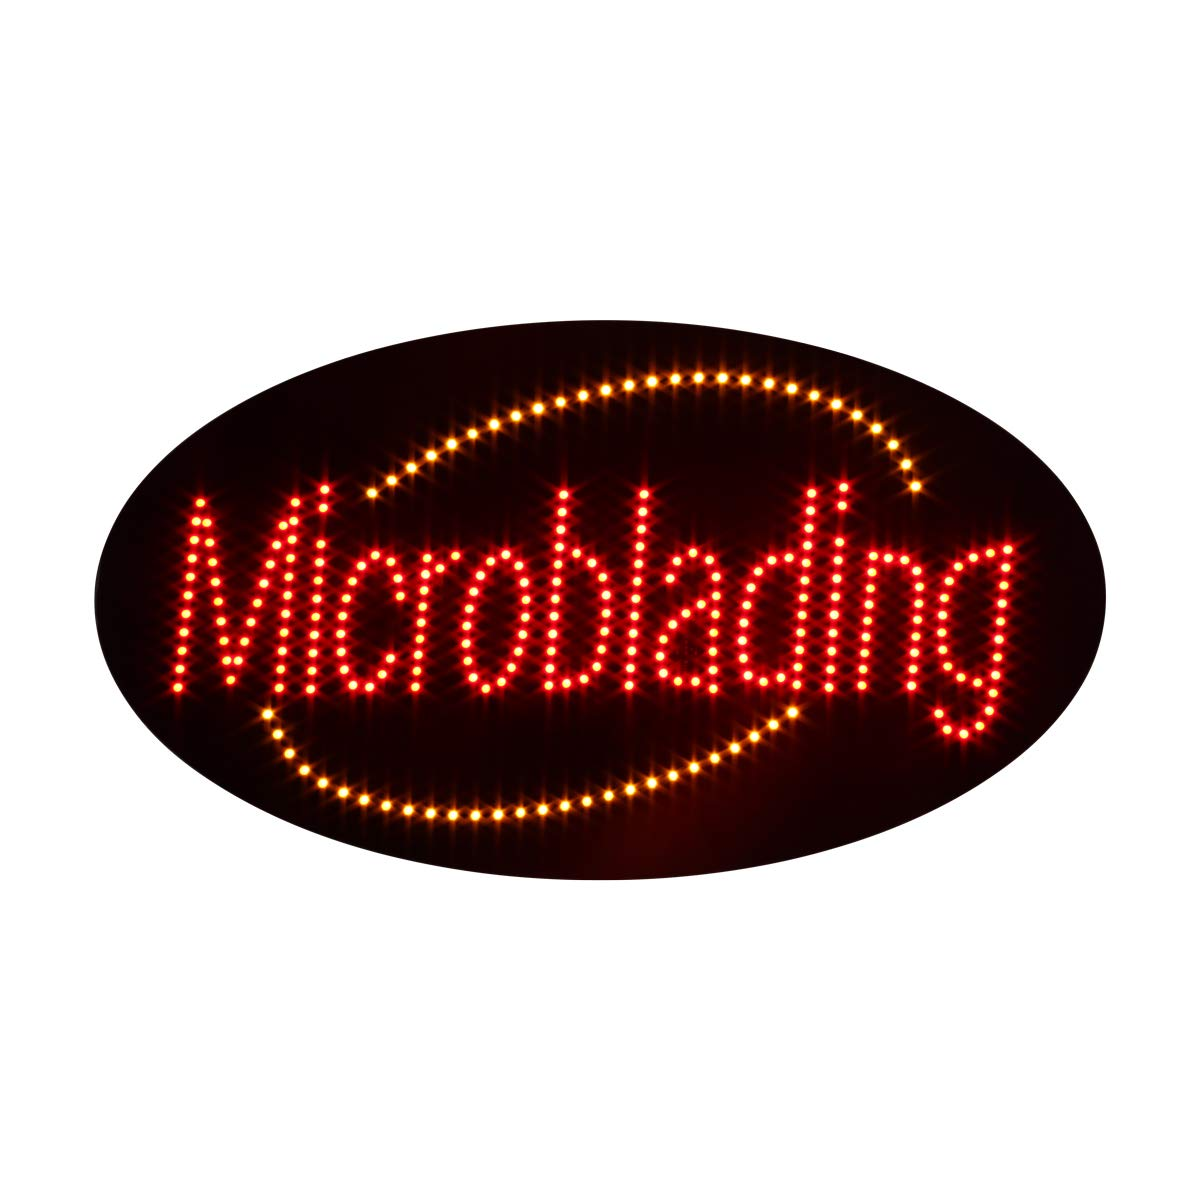 LED Eyebrow Microblading Open Light Sign Super Bright Electric Advertising Display Board for Permanent Makeup Beauty Salon Business Shop Store Window Bedroom Decor 27 x 15 inches